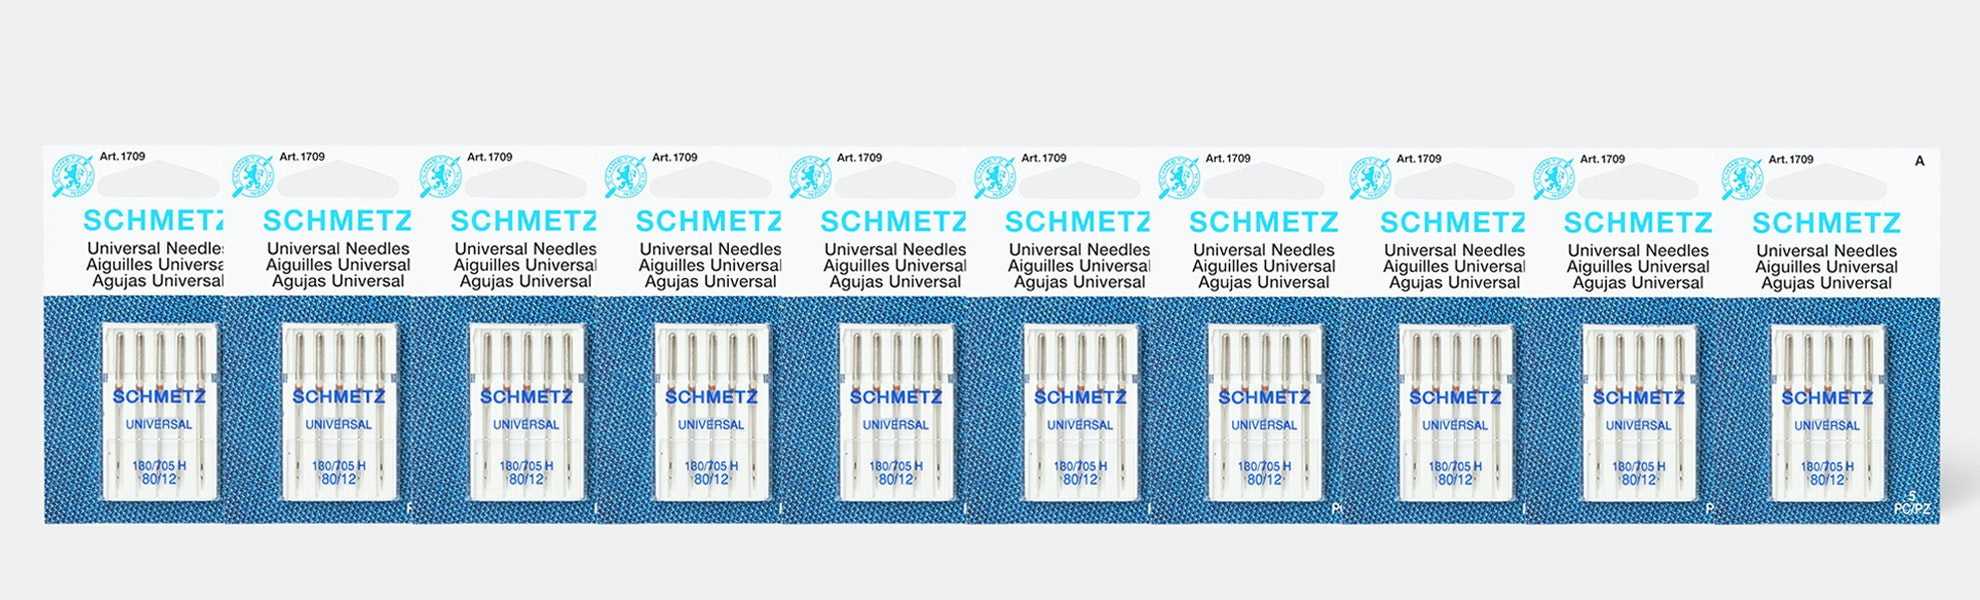 Schmetz Carded Needles (50 Count)